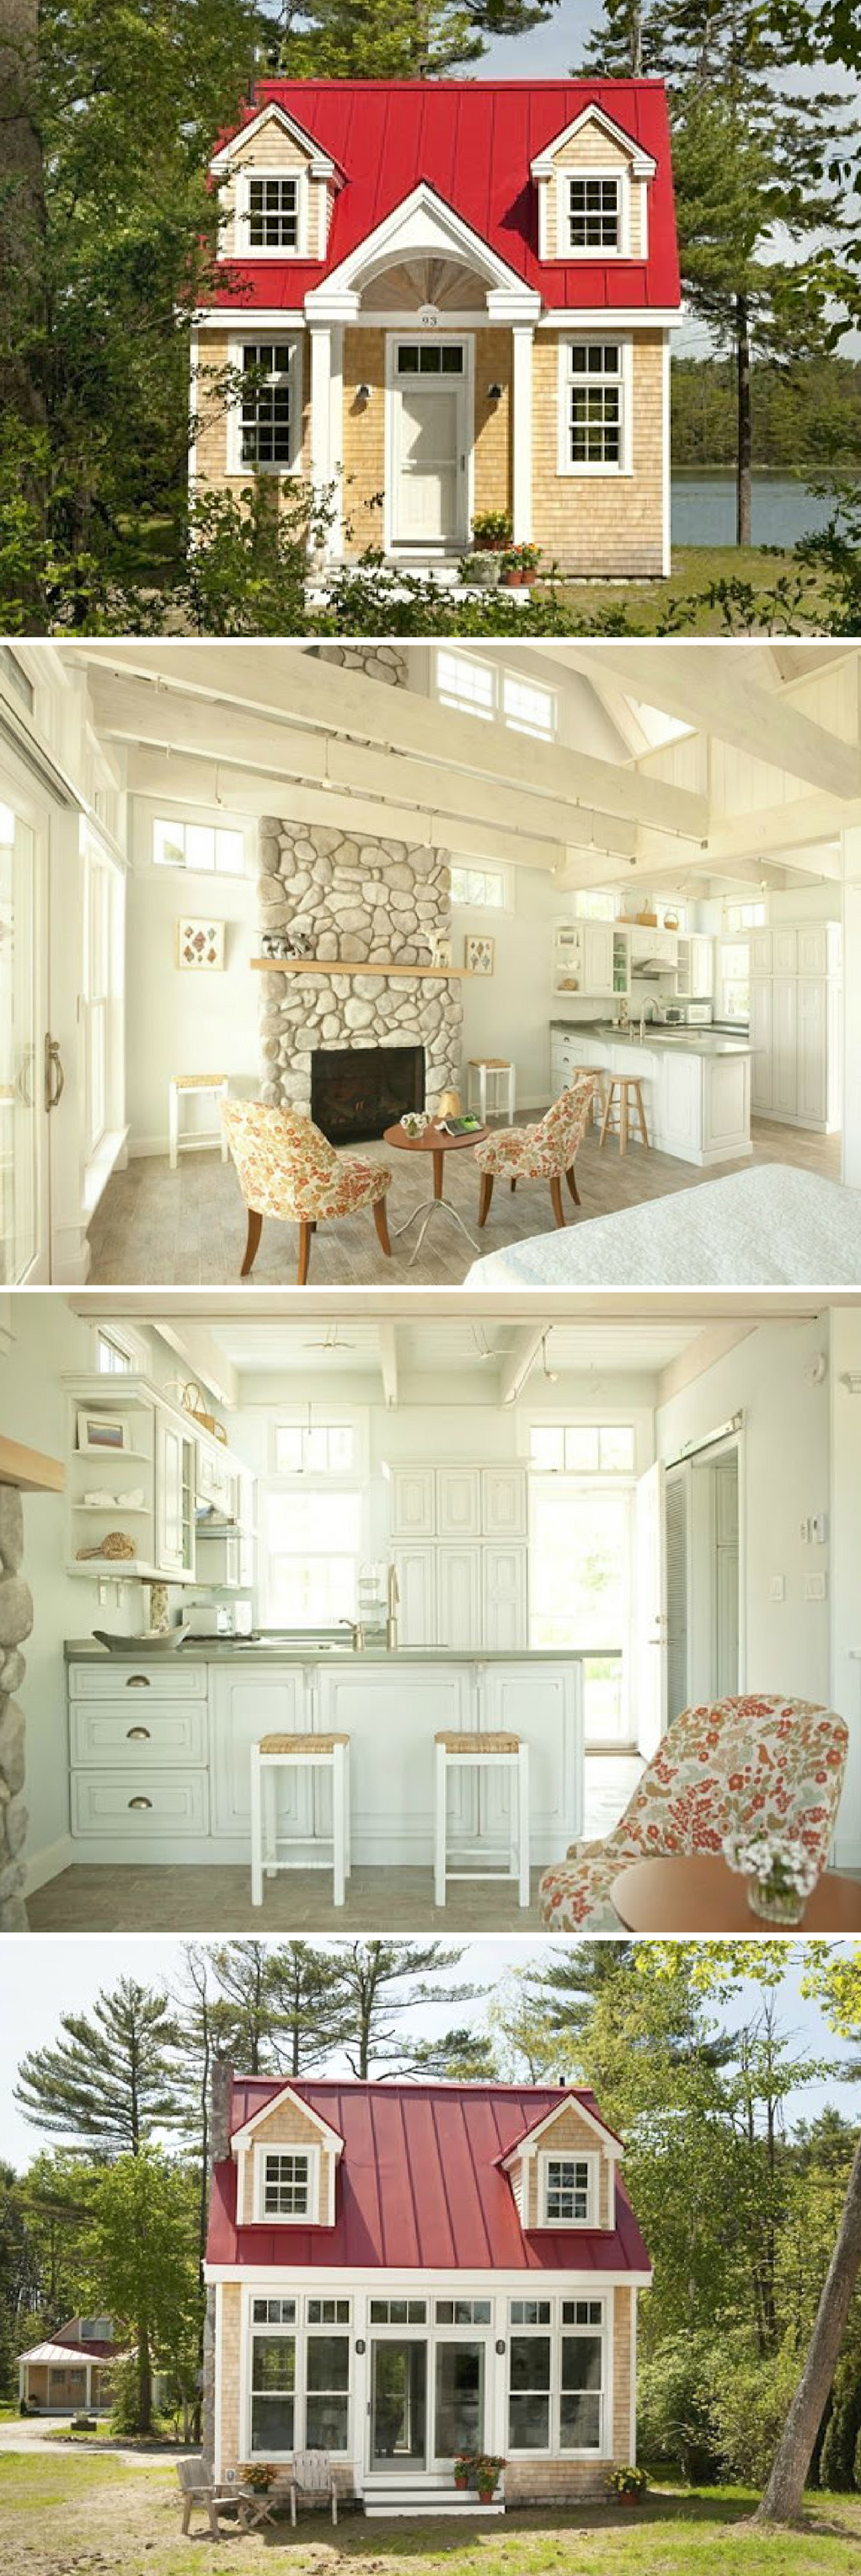 A tiny house in maine cabins and cottages pinterest for Minimalist cottage style